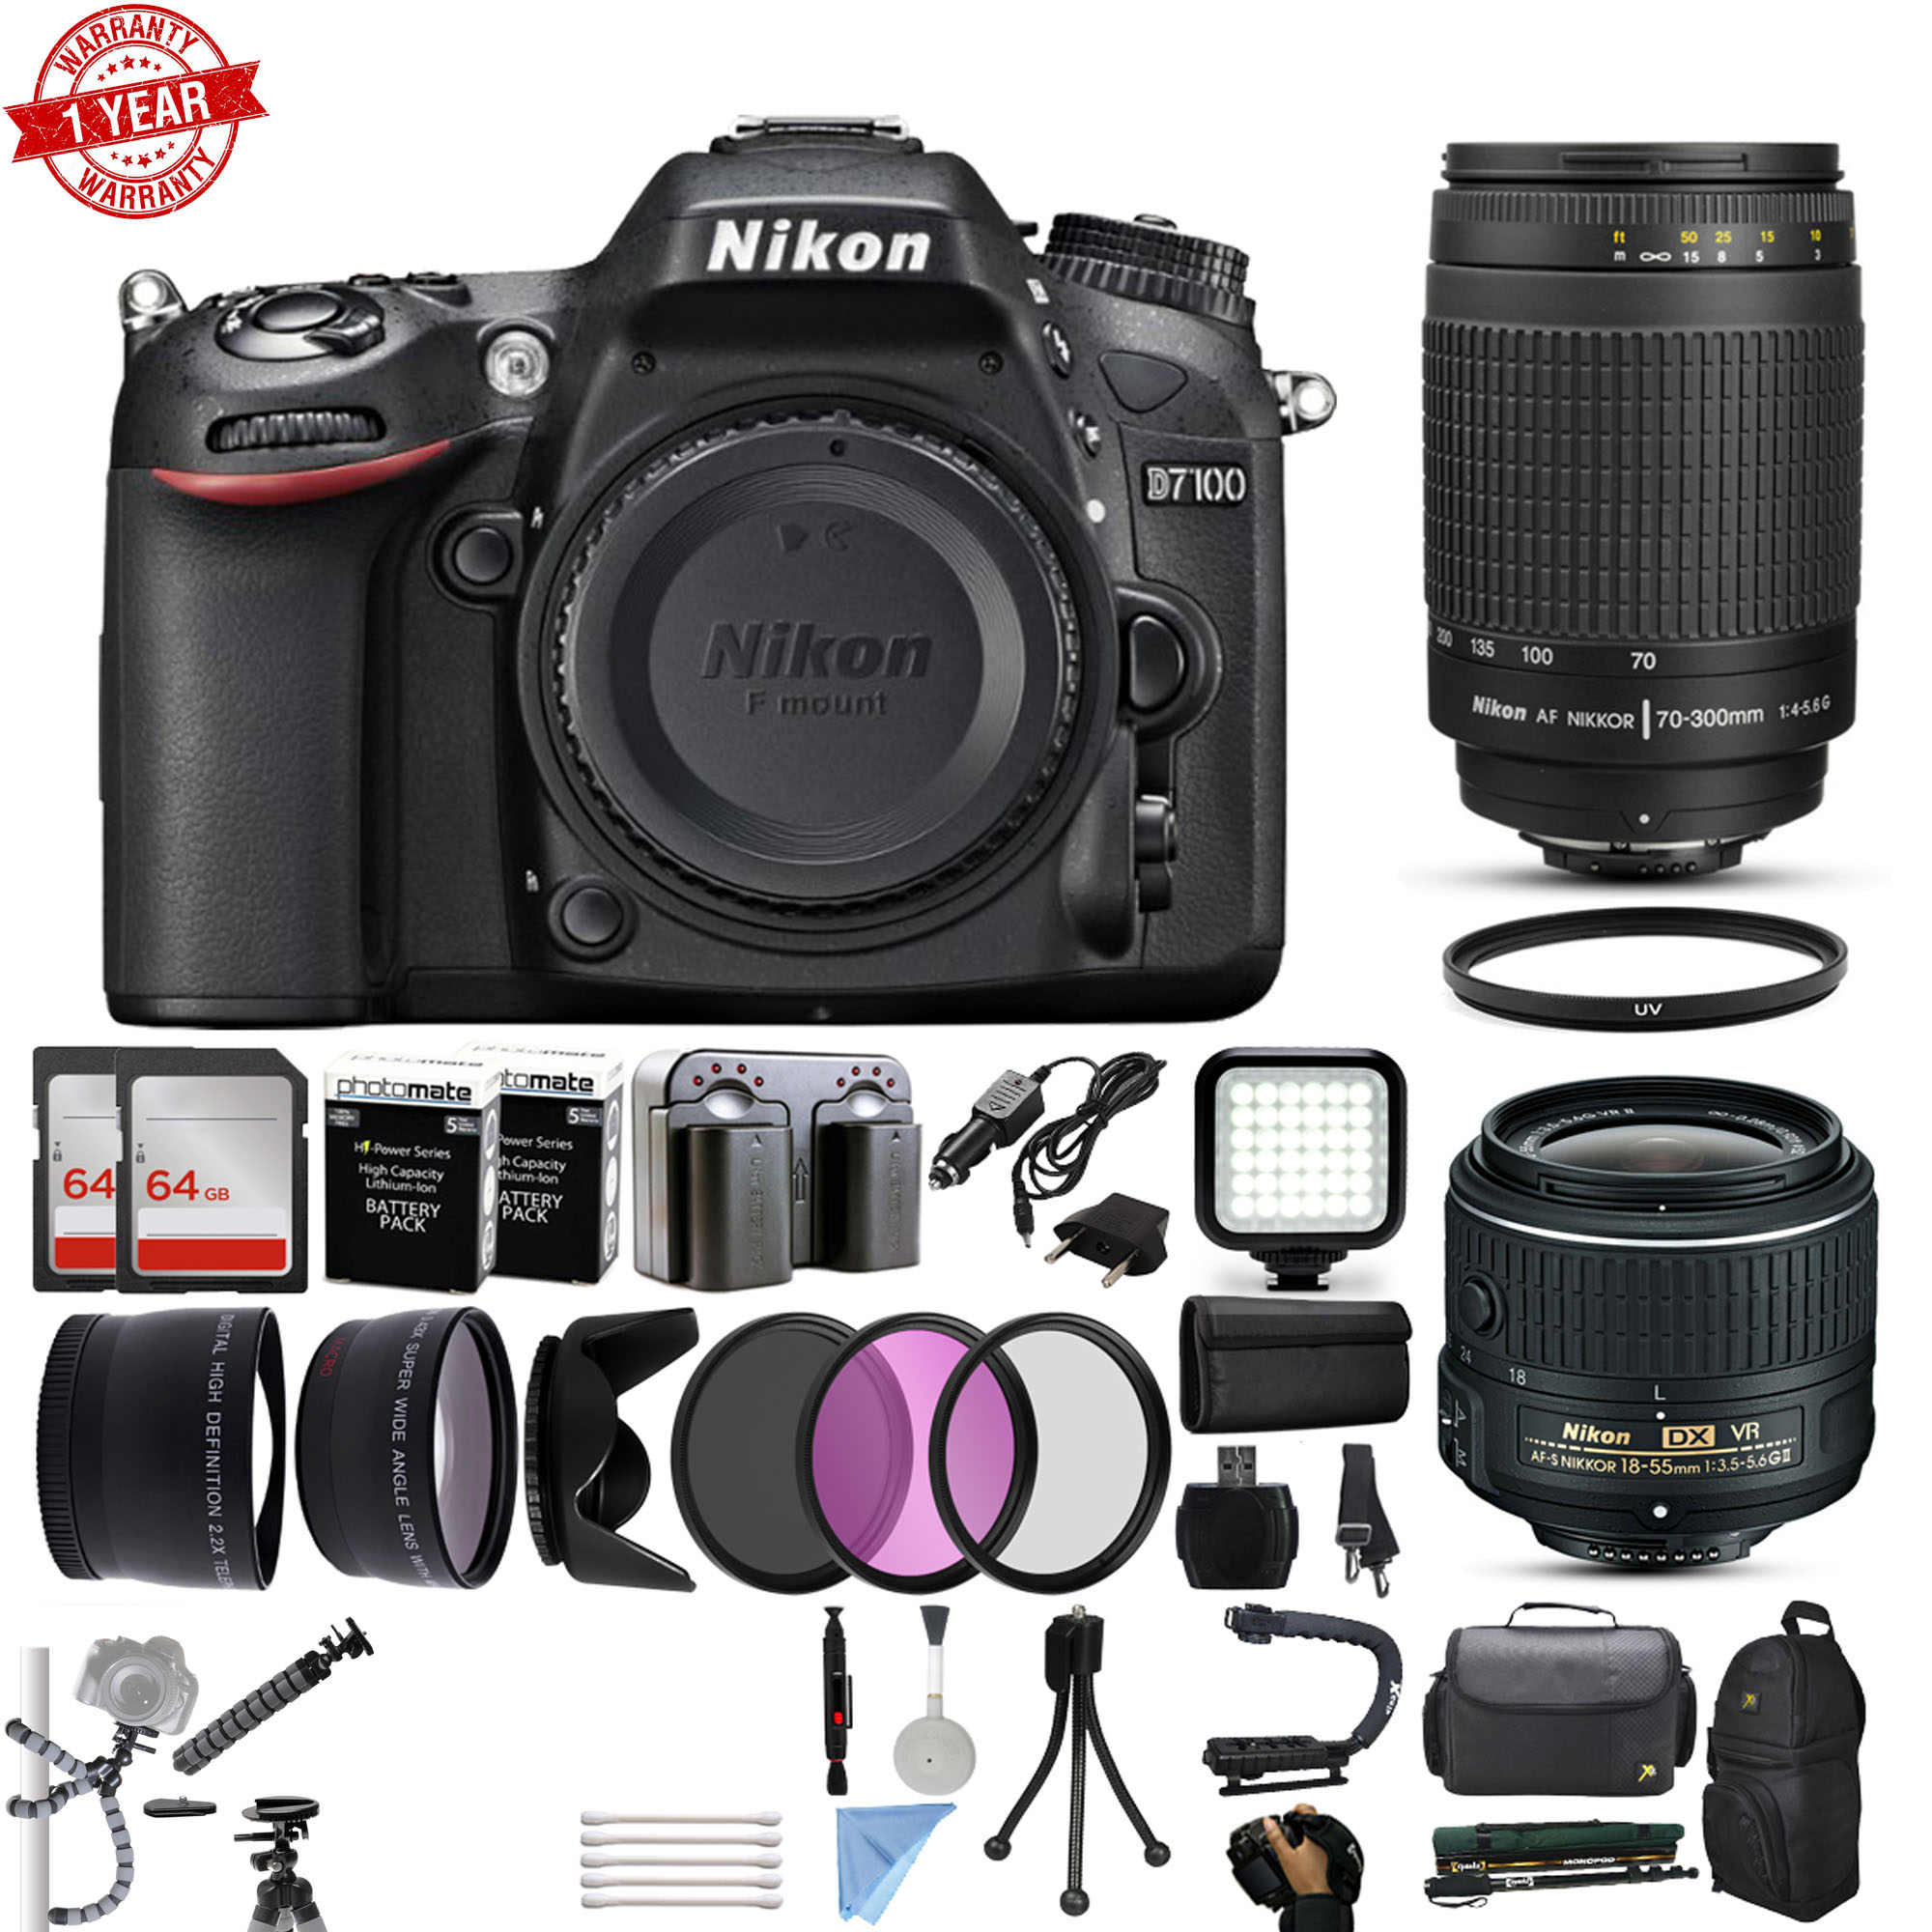 Nikon D7100 DSLR Digital Camera with 18-55mm VR II + 70-300mm f/4-5.6G Lens + 128GB Memory + 2 Batteries + Charger + LED Video Light + Backpack